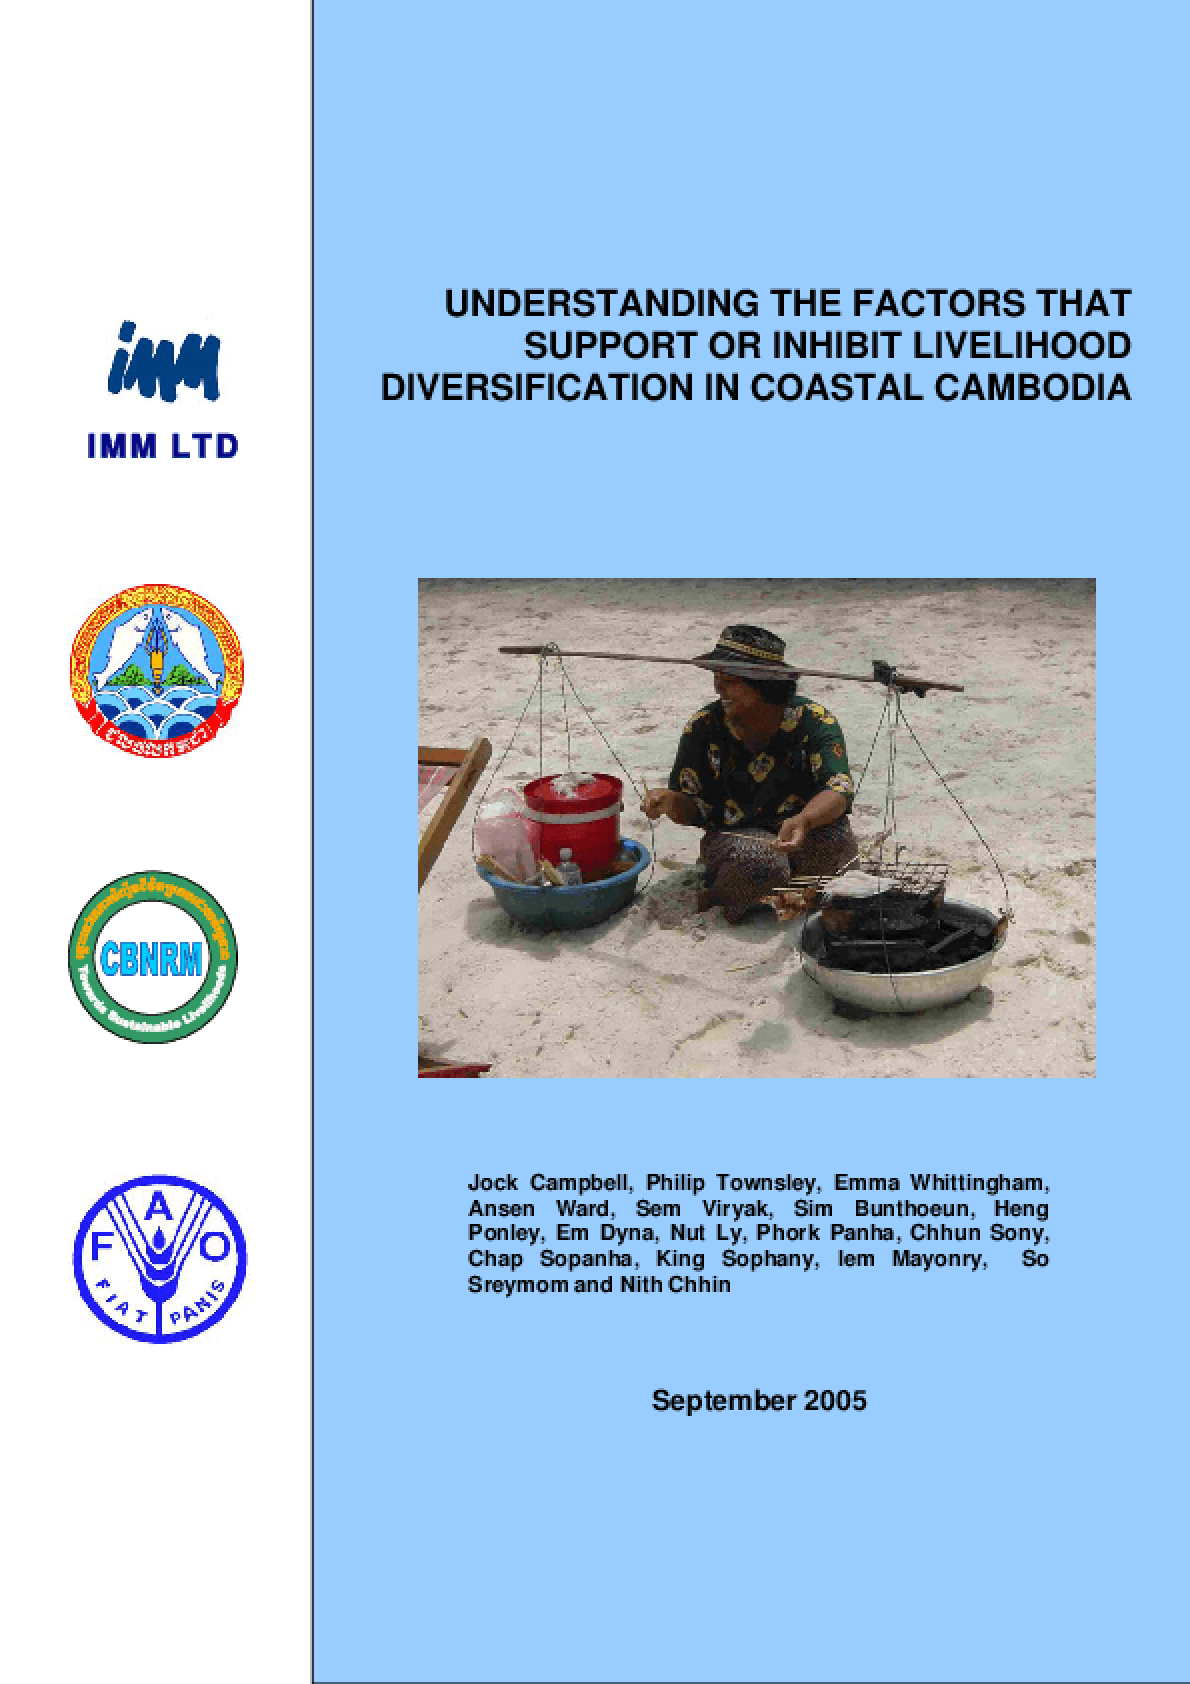 Understanding the Factors that Support or Inhibit Livelihood Diversification in Coastal Cambodia